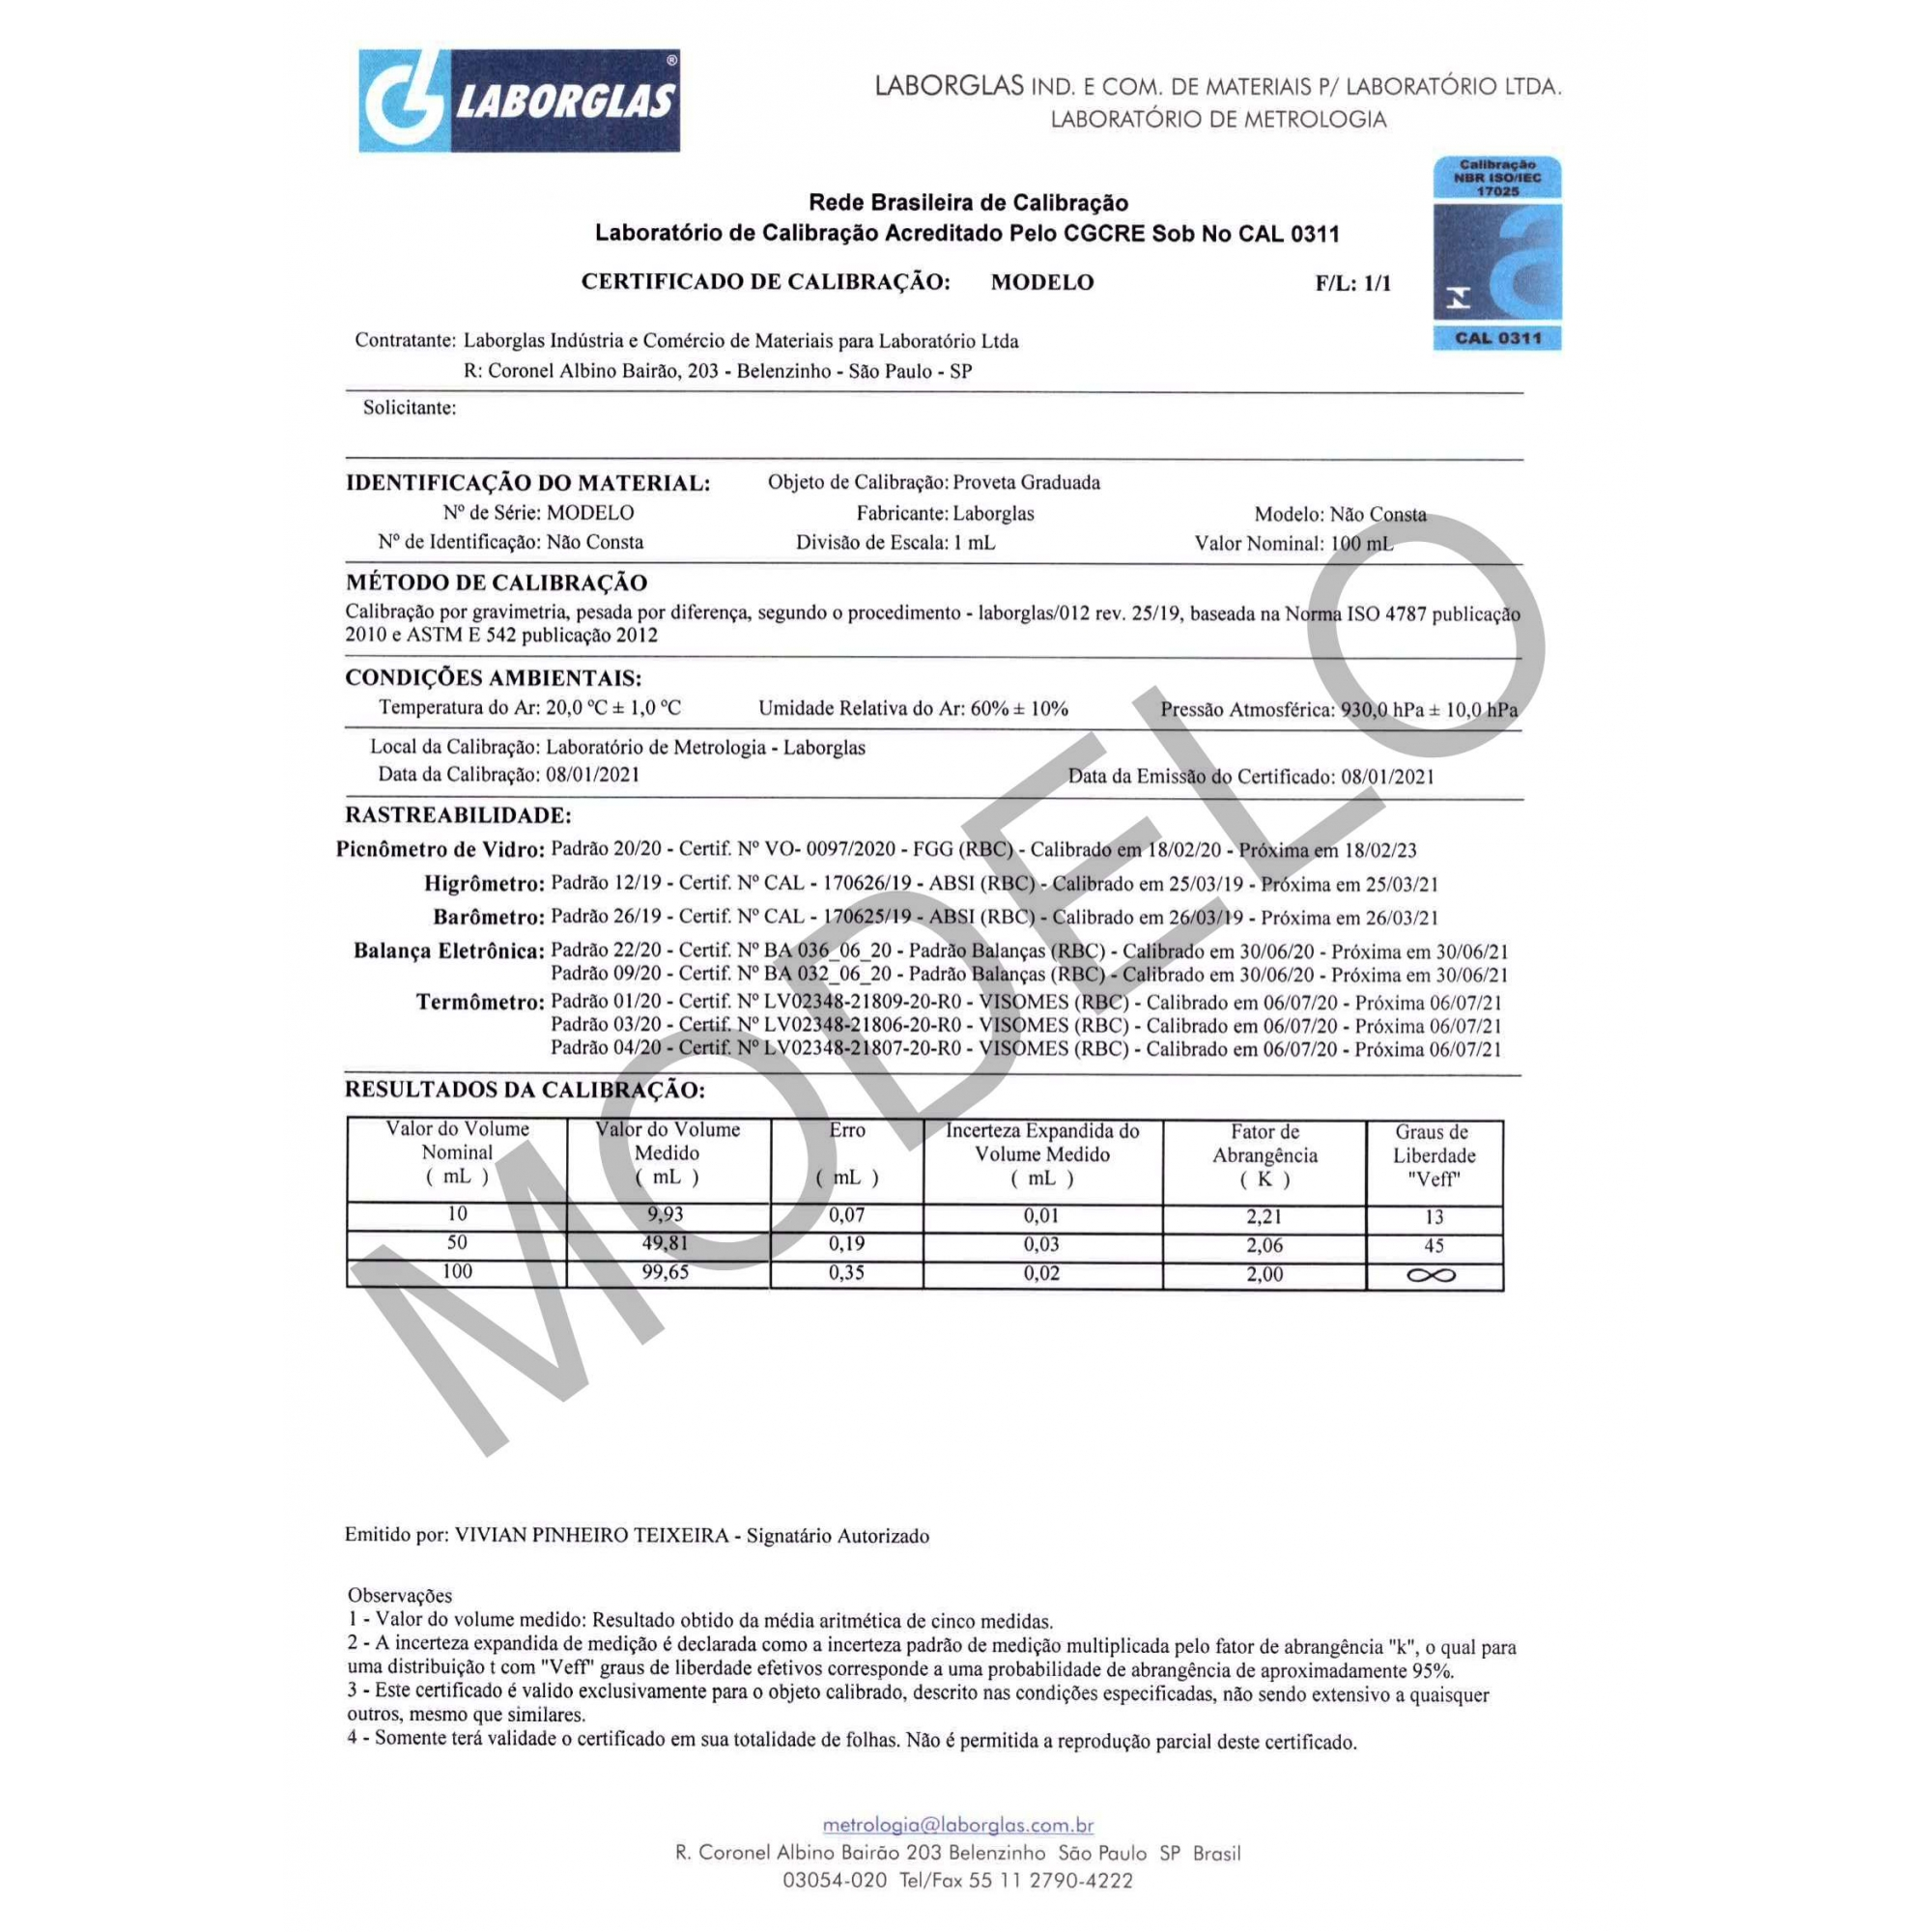 PROVETA GRADUADA BASE HEXAGONAL DE POLIPROPILENO 1000 ML CERTIFICADO RBC - Laborglas - Cód. 913863654